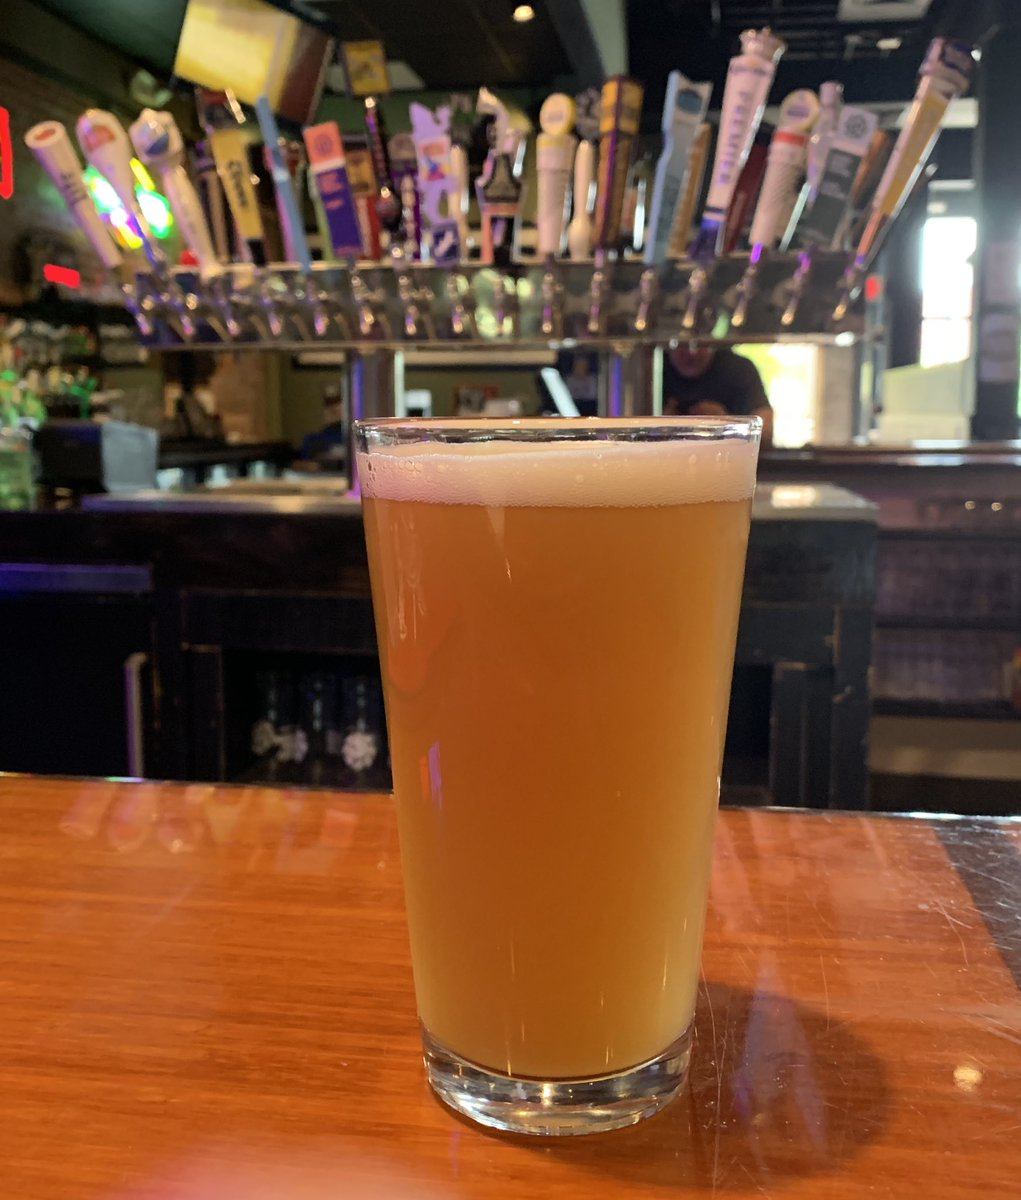 Mid-week bar stop at Henry Hudson's Public House in Bricktown! They are the first bar to tap Liberty Call! This pineapple jalapeño hefeweizen is the perfect beer for this hot, humid Oklahoma day.  #libertycall #newbeerontap #bricktownokc #pineapplejalapeno #hefeweizen<br>http://pic.twitter.com/XyUOSEV9sv